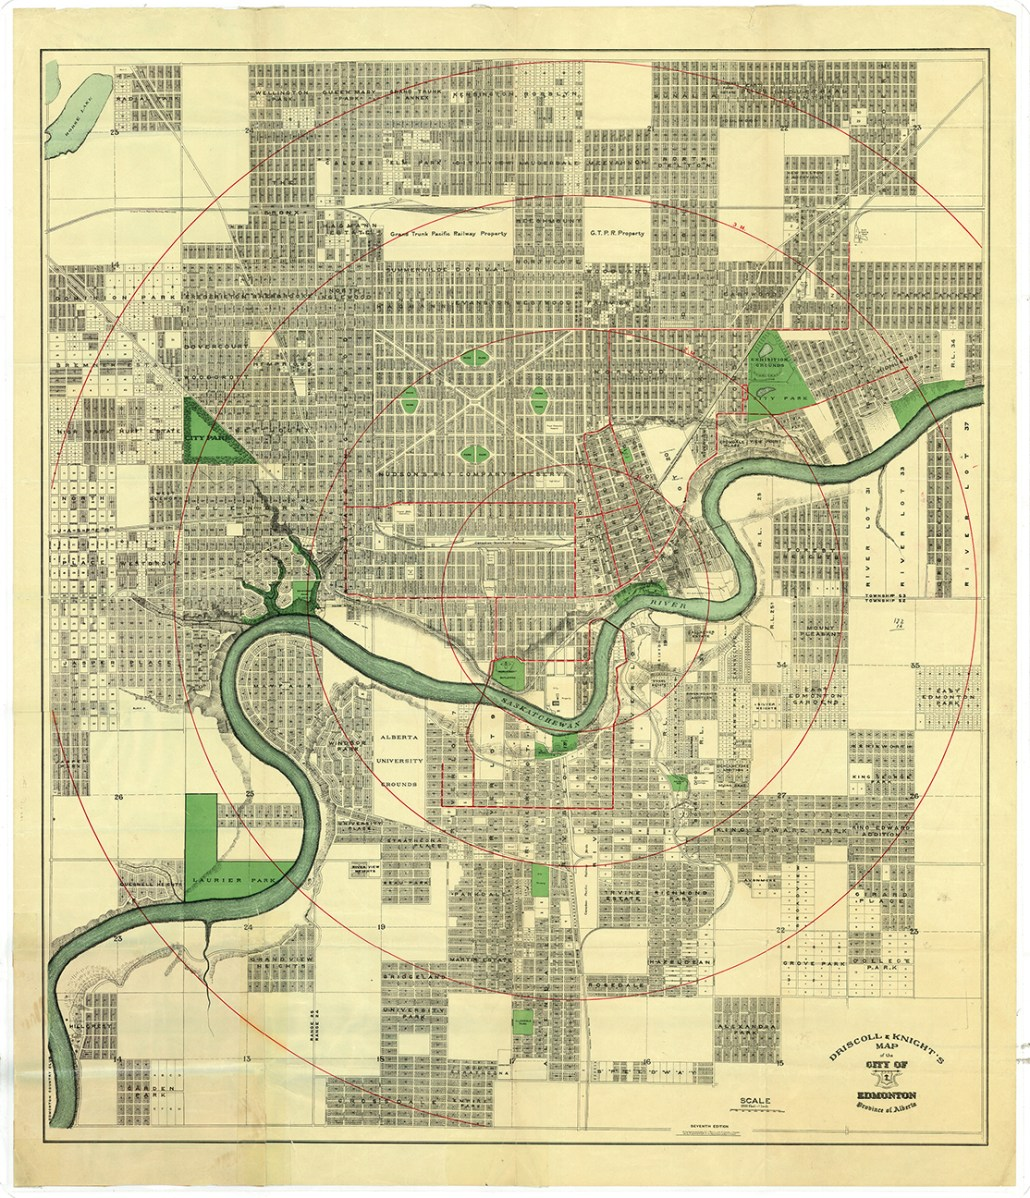 Driscoll and Knight Map of the City of Edmonton 1912. Image courtesy of the City of Edmonton Archives EAM-78.